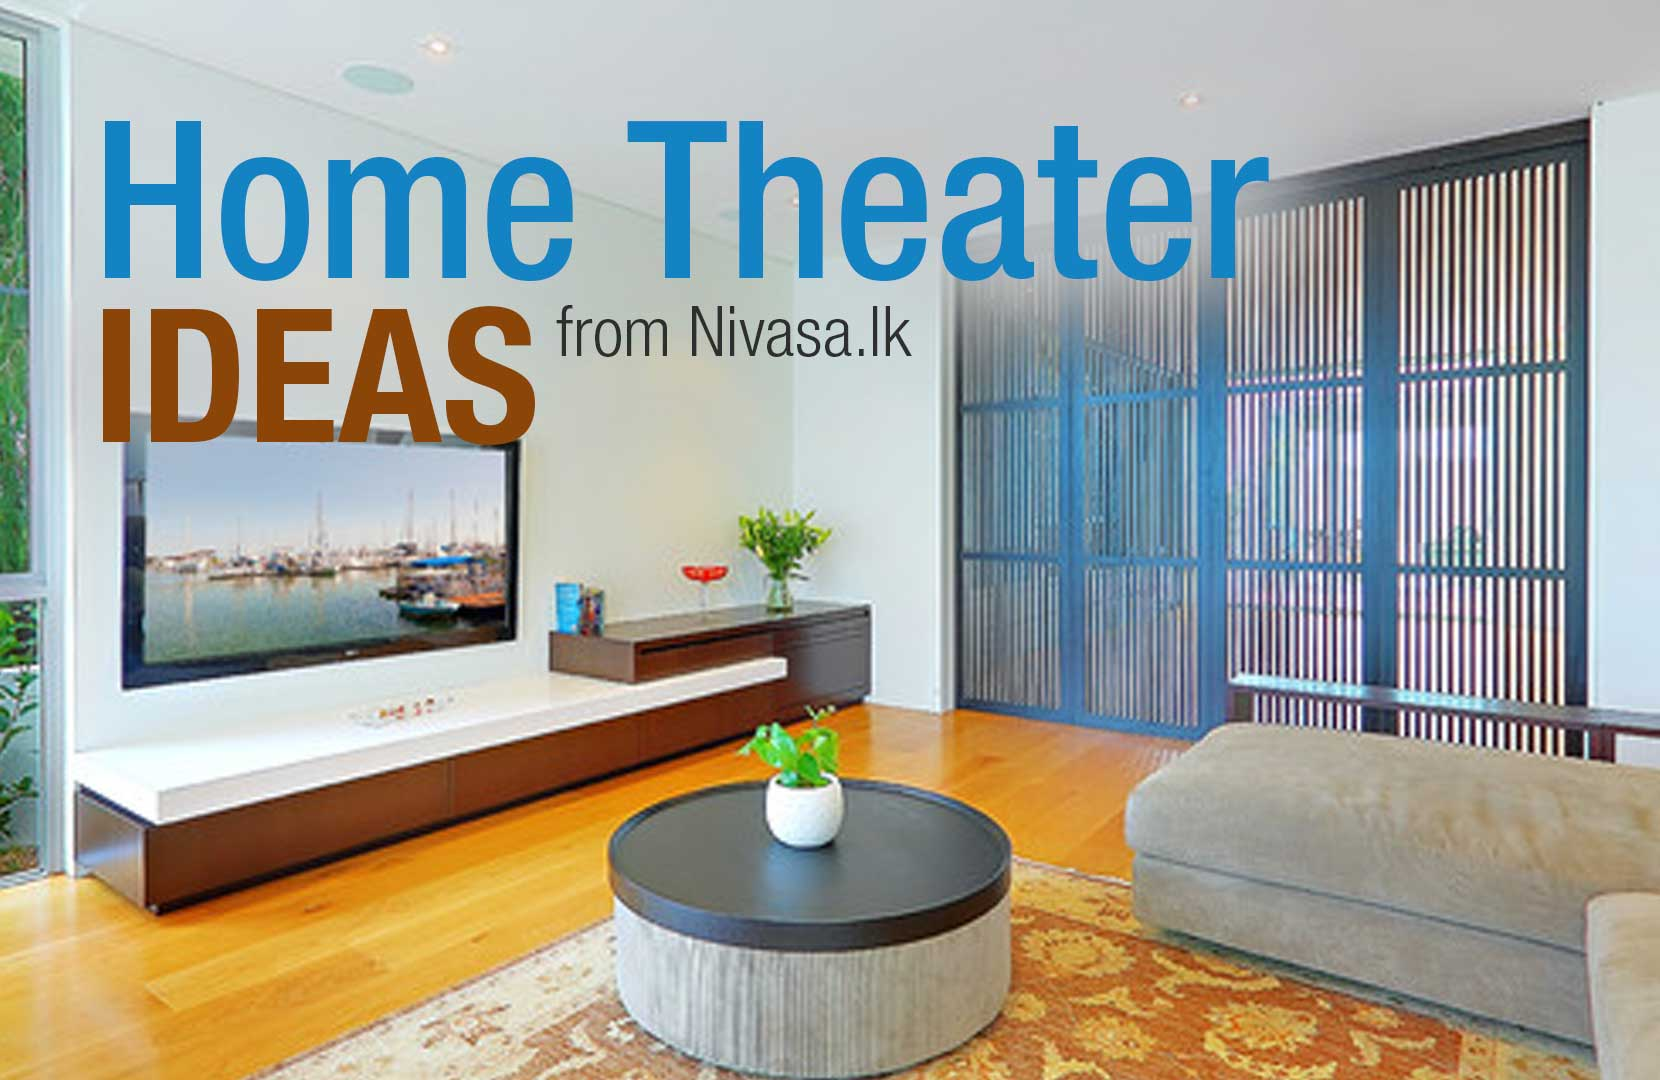 If you're a Movie Lover, Here are Home Theater Ideas for your Home